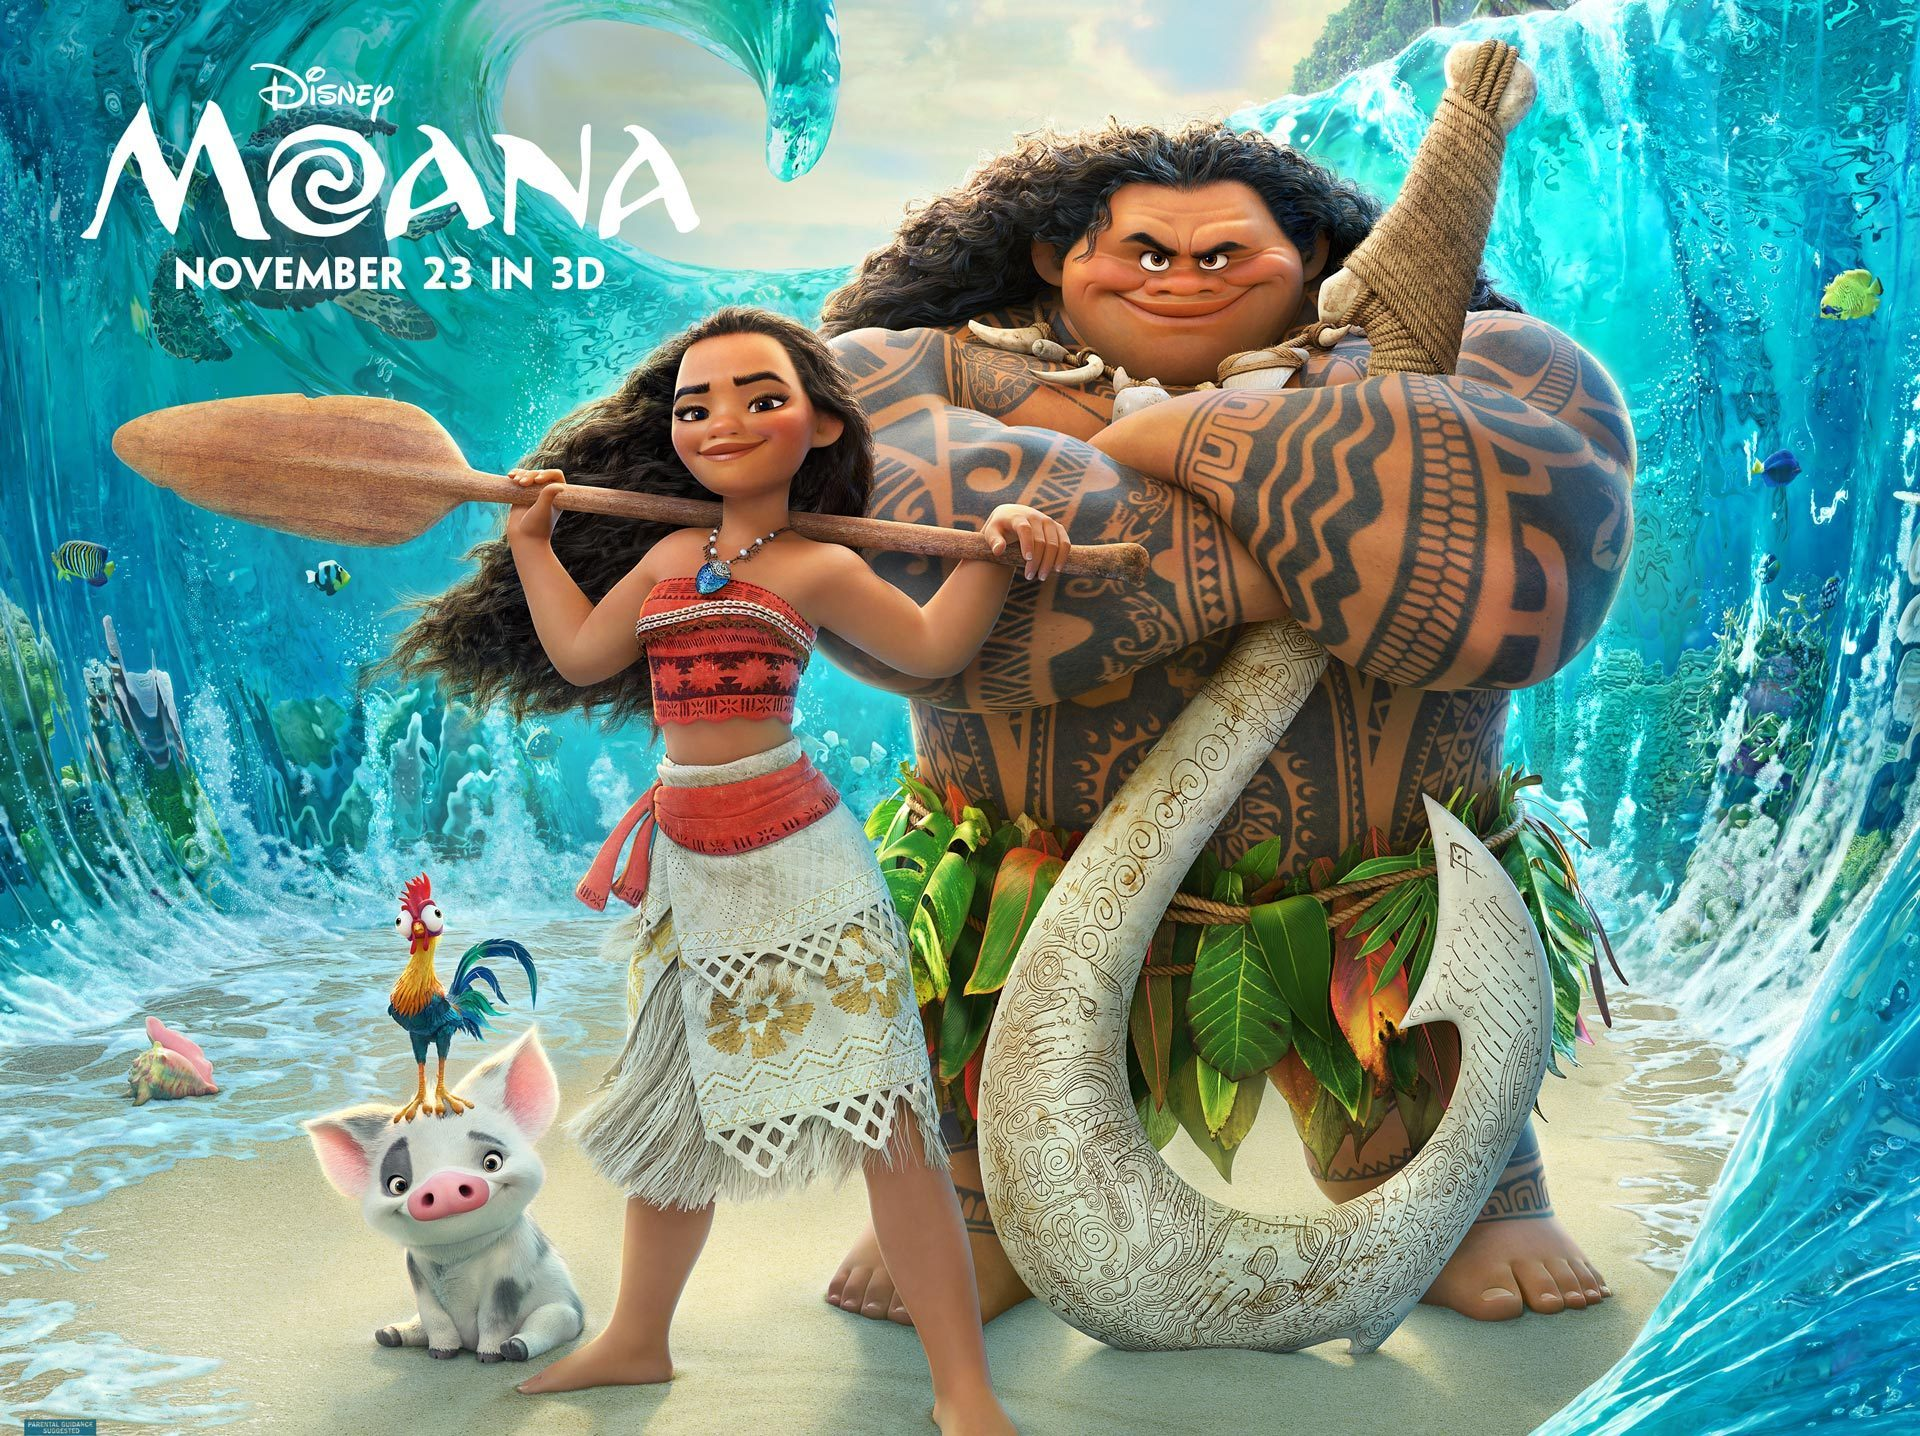 Disney's Hollywood Studios To Begin Showing Sneak Peak of Moana November 5th.